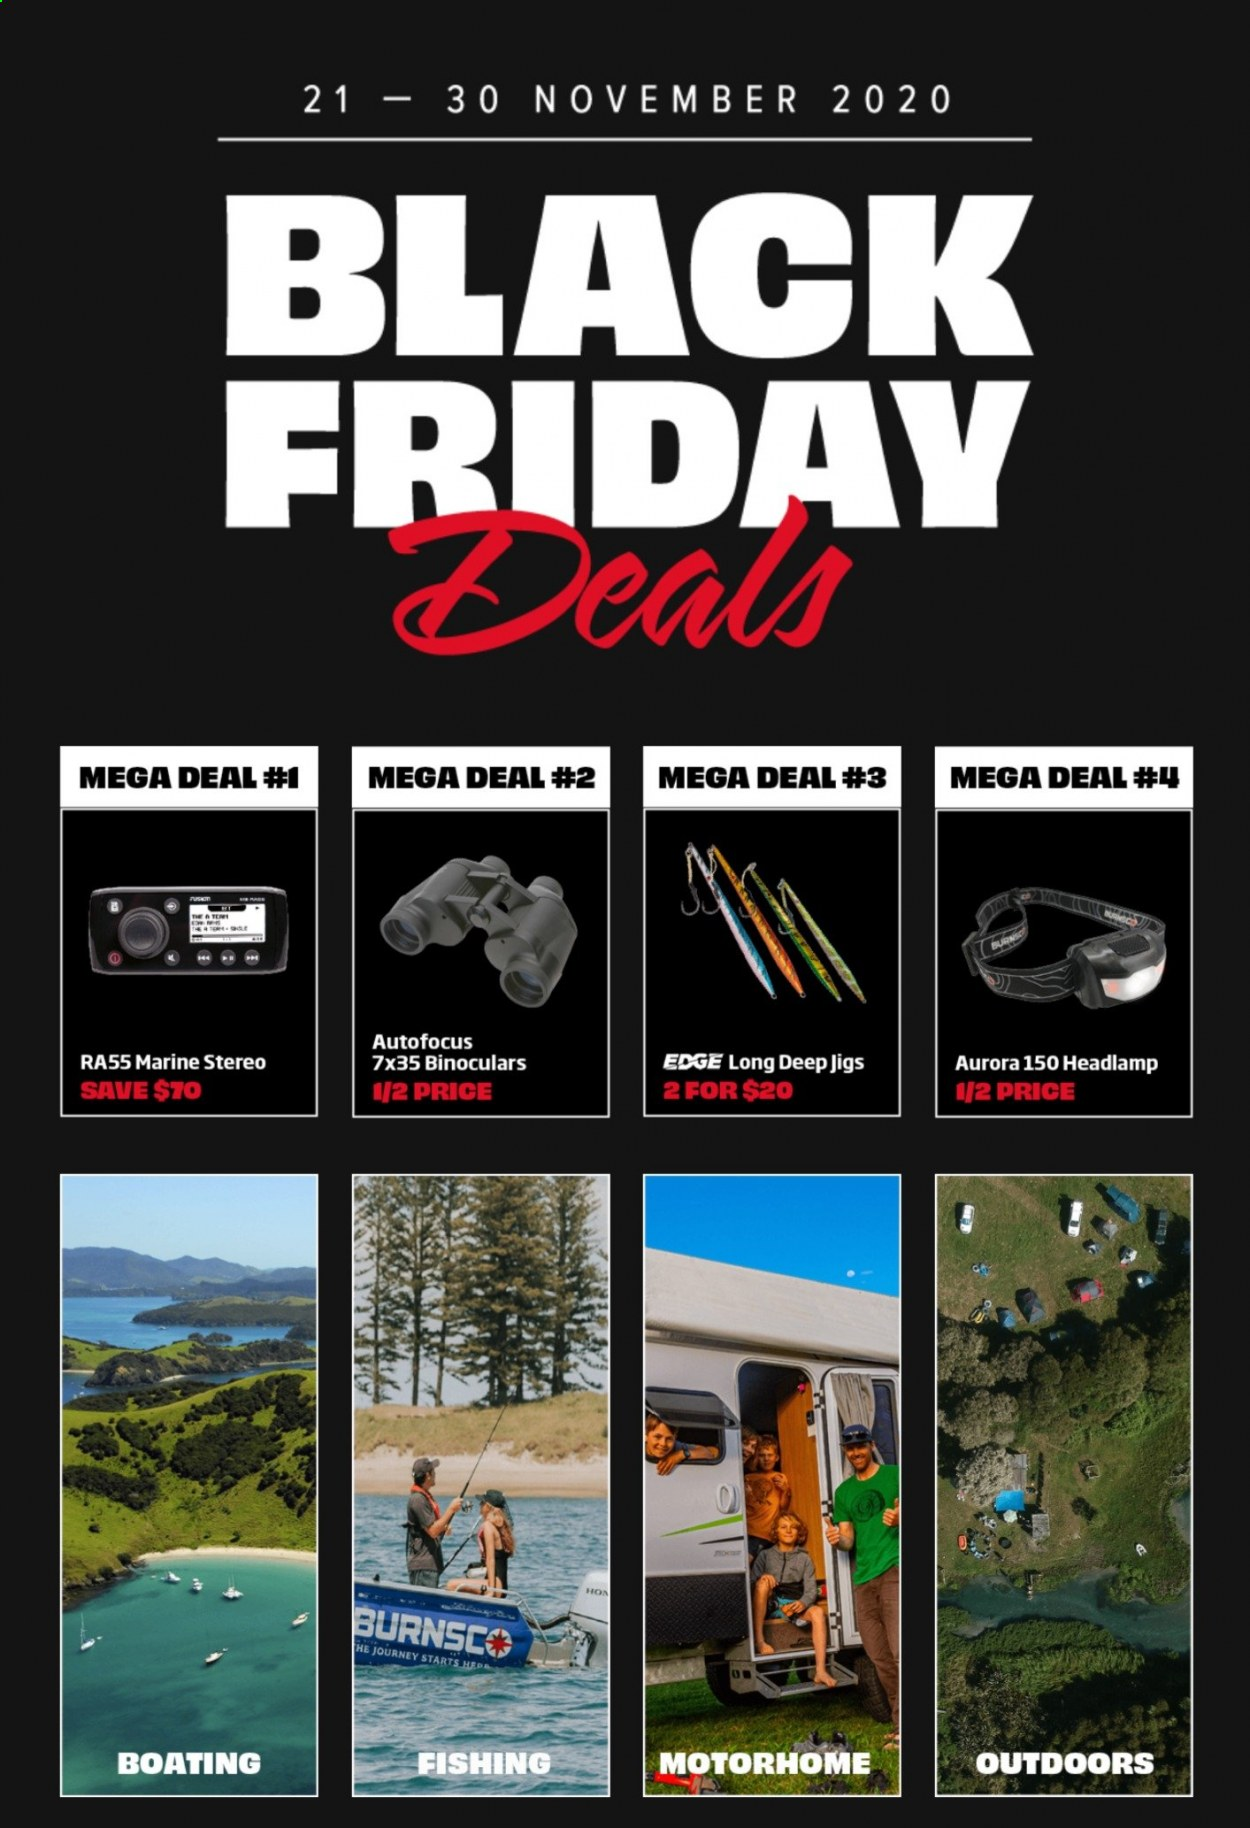 Burnsco mailer - 21.11.2020 - 30.11.2020 - Sales products - binoculars, headlamp, fishing, black friday. Page 1.